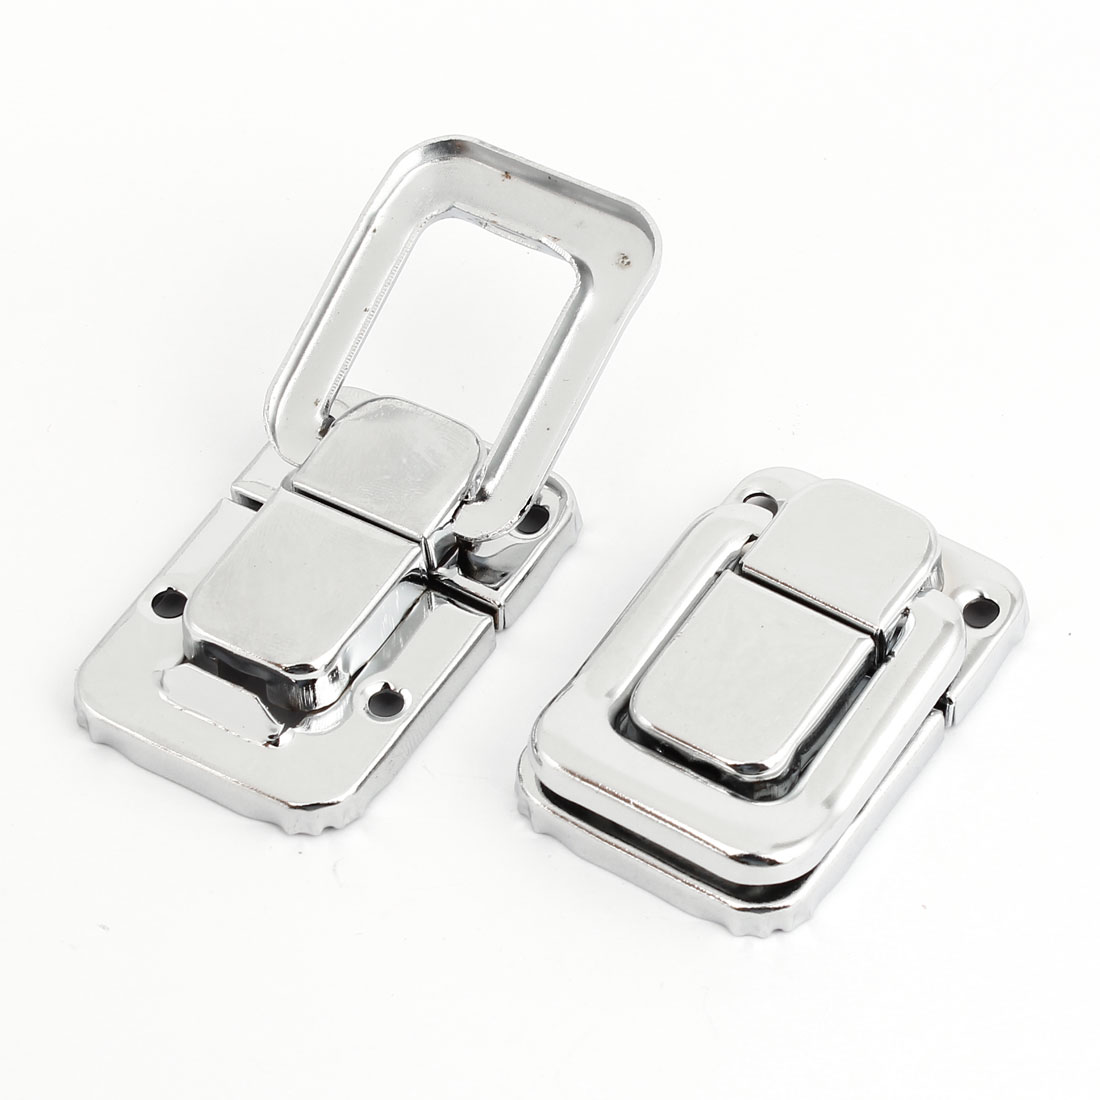 2 Pcs Screw Mount Silver Tone Toolbox Suit Case Toggle Draw Latch